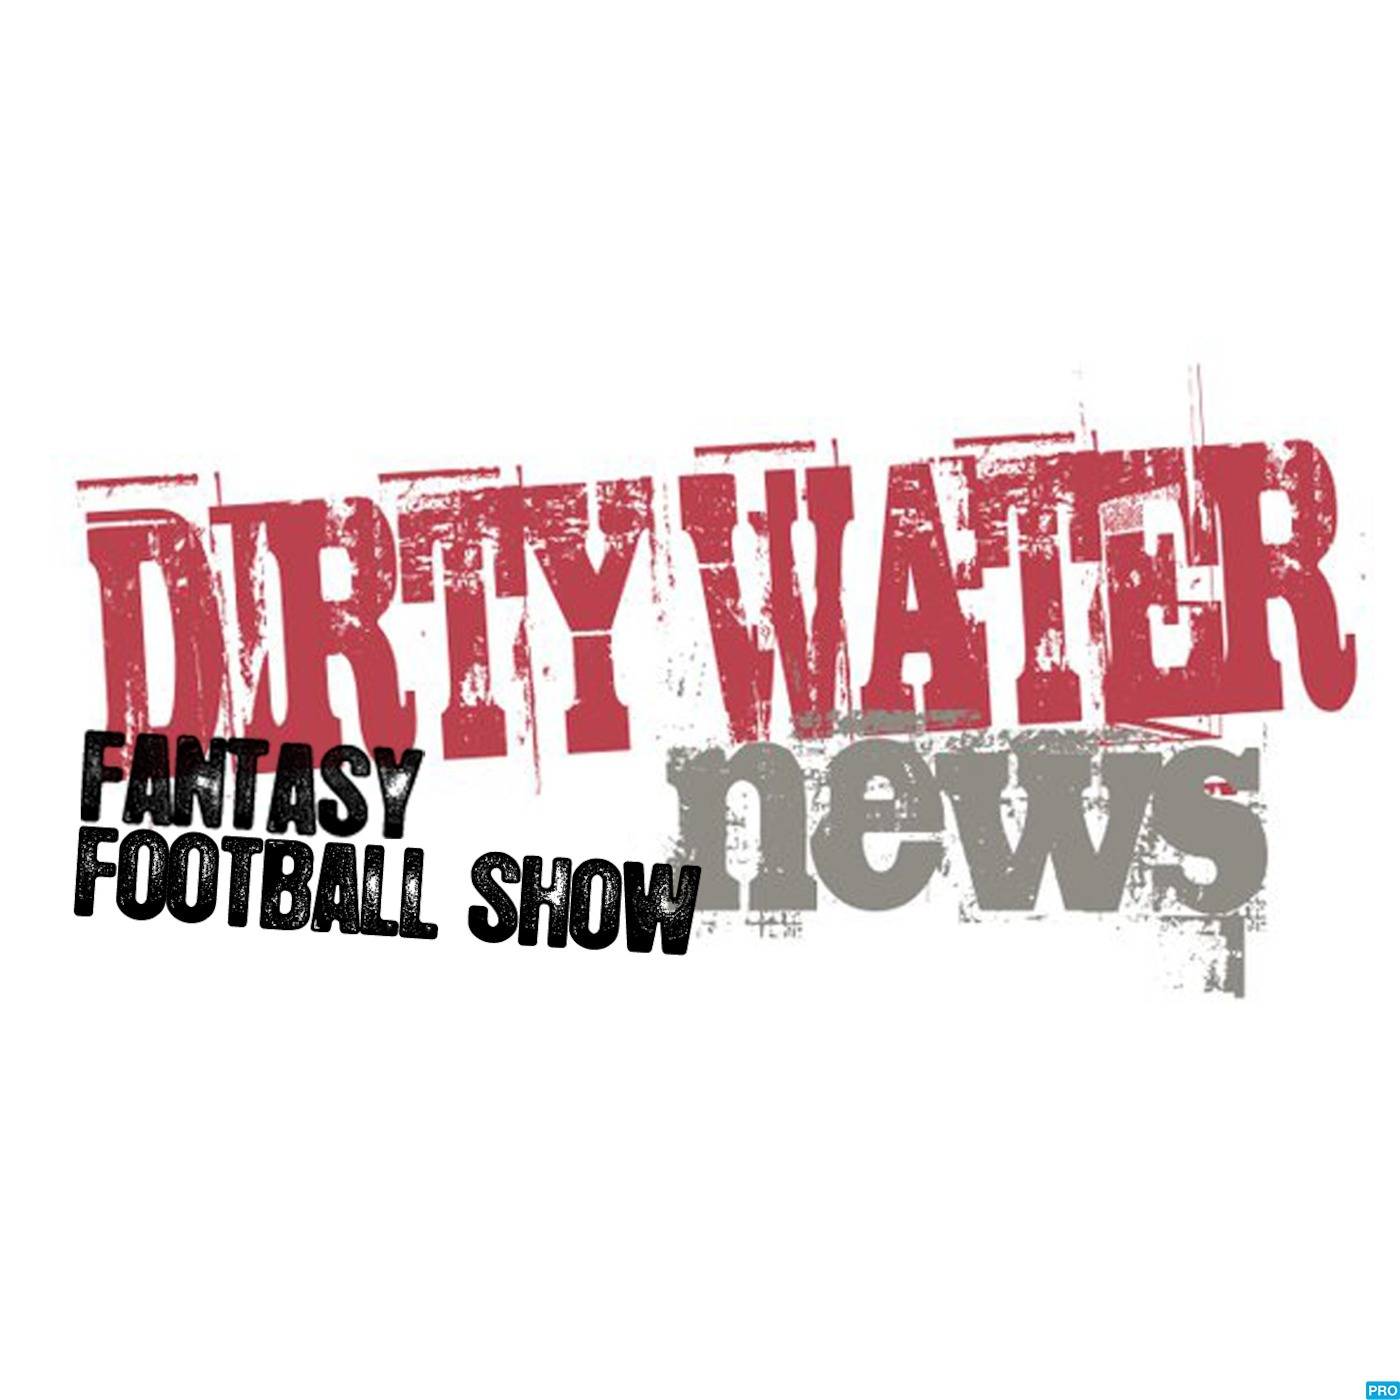 Dirty Water News Fantasy Football Show